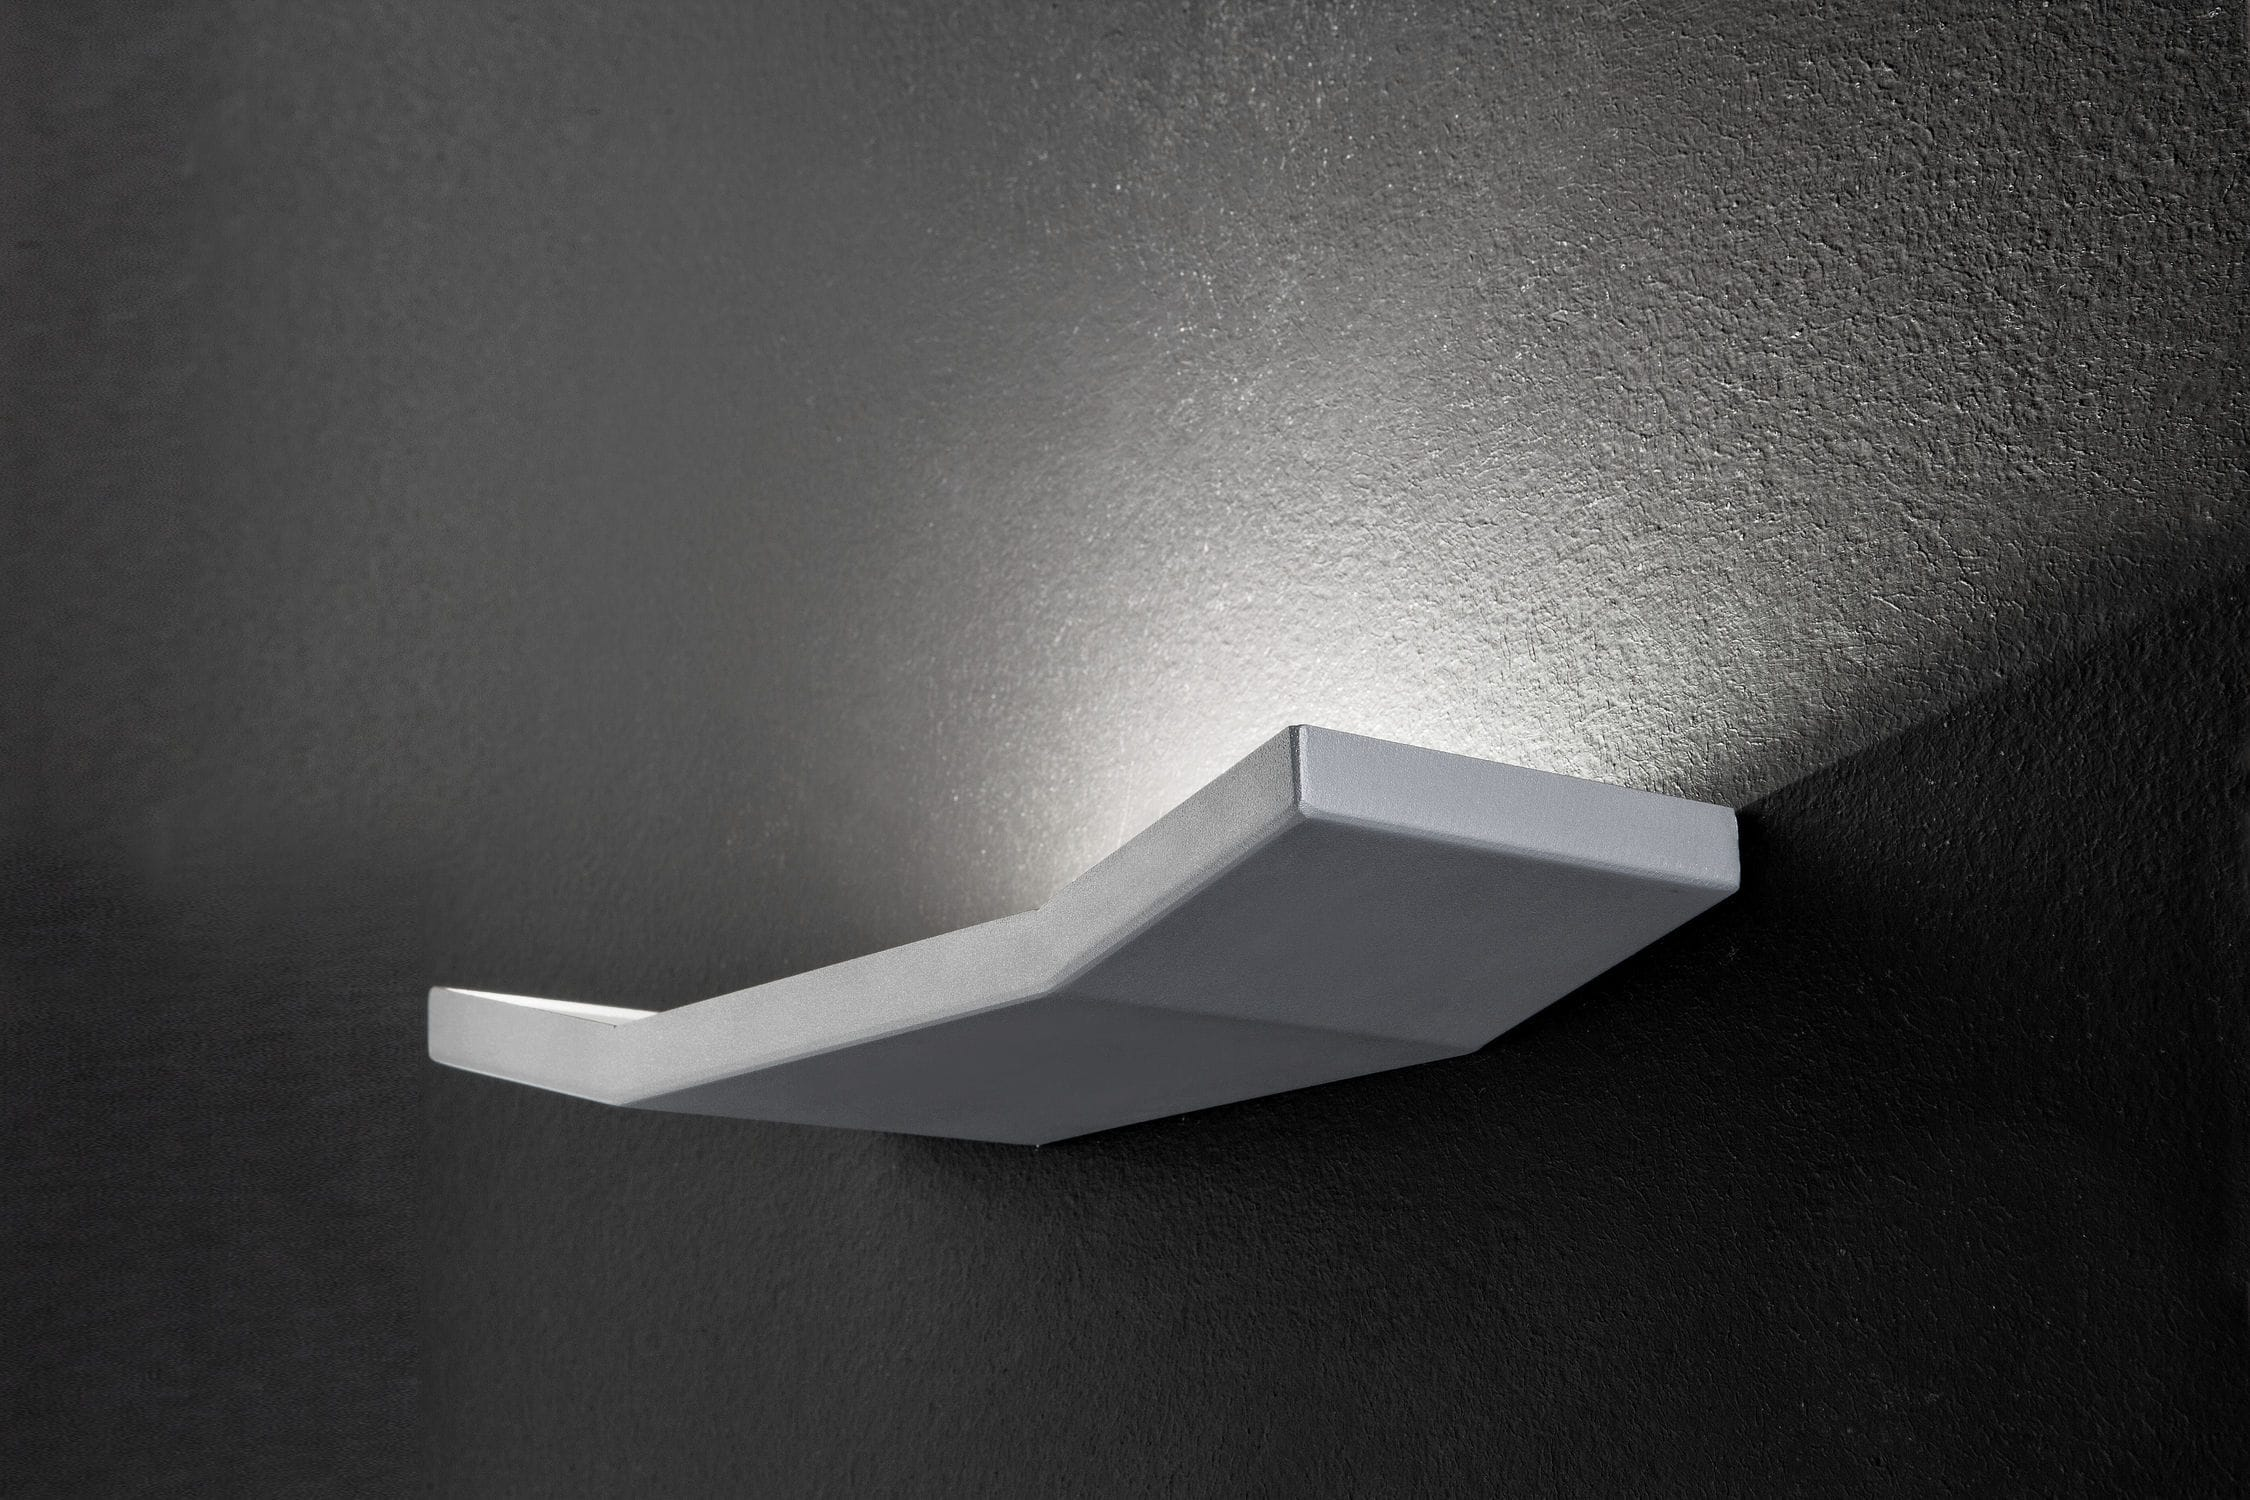 Applique moderna in metallo led dimmerabile aliante a